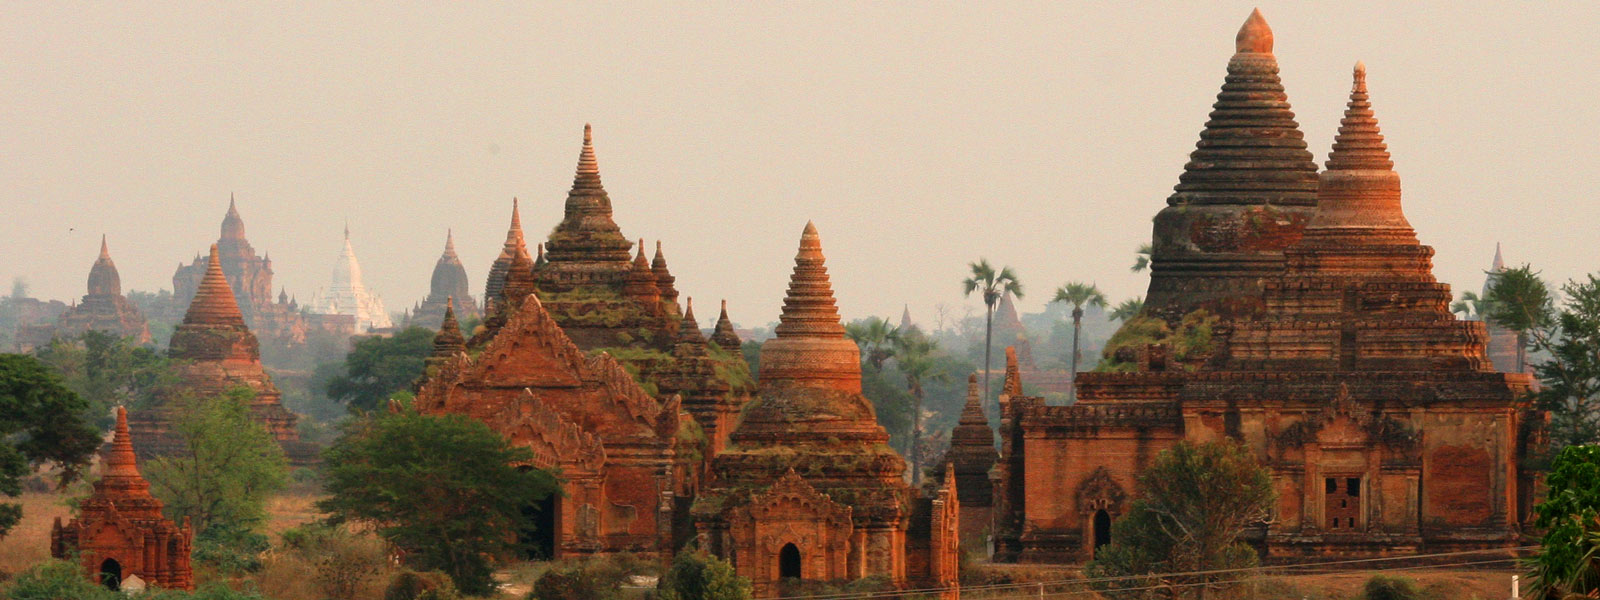 Asia Exotica - The Art of Travel